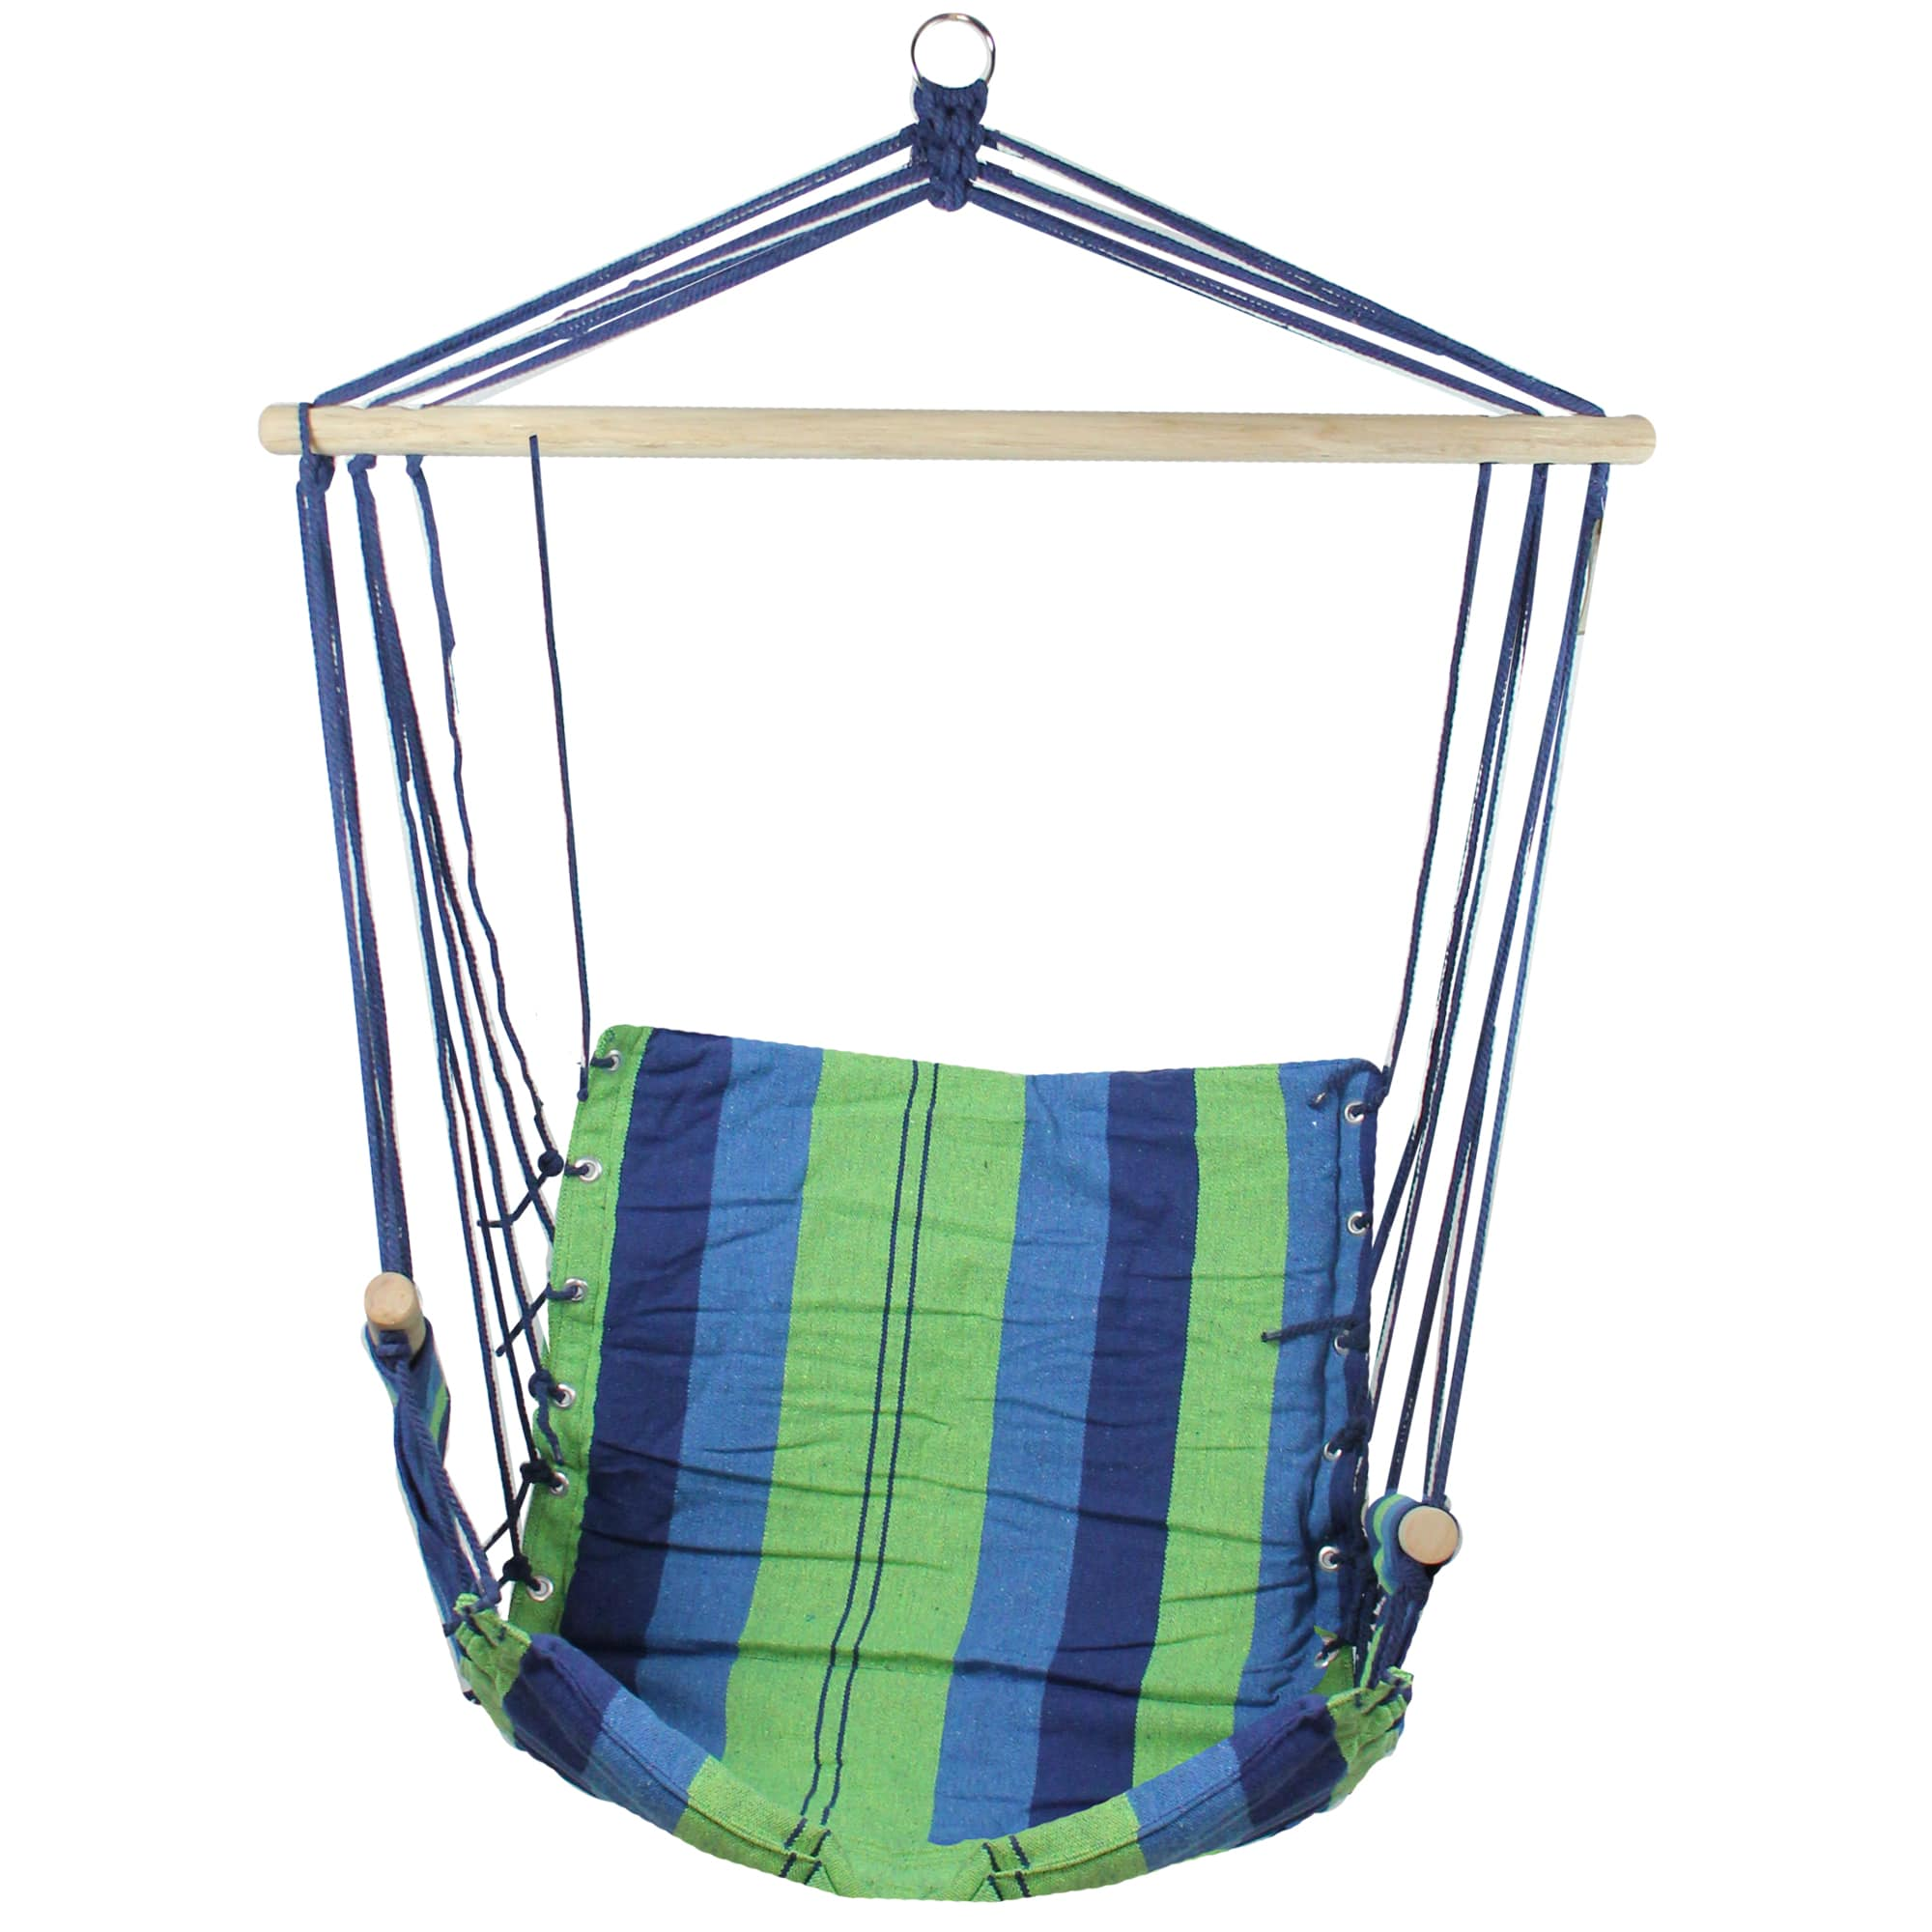 37 X 35 Green Blue Striped Pattern Hammock Chair With Padding And Wooden Armrests